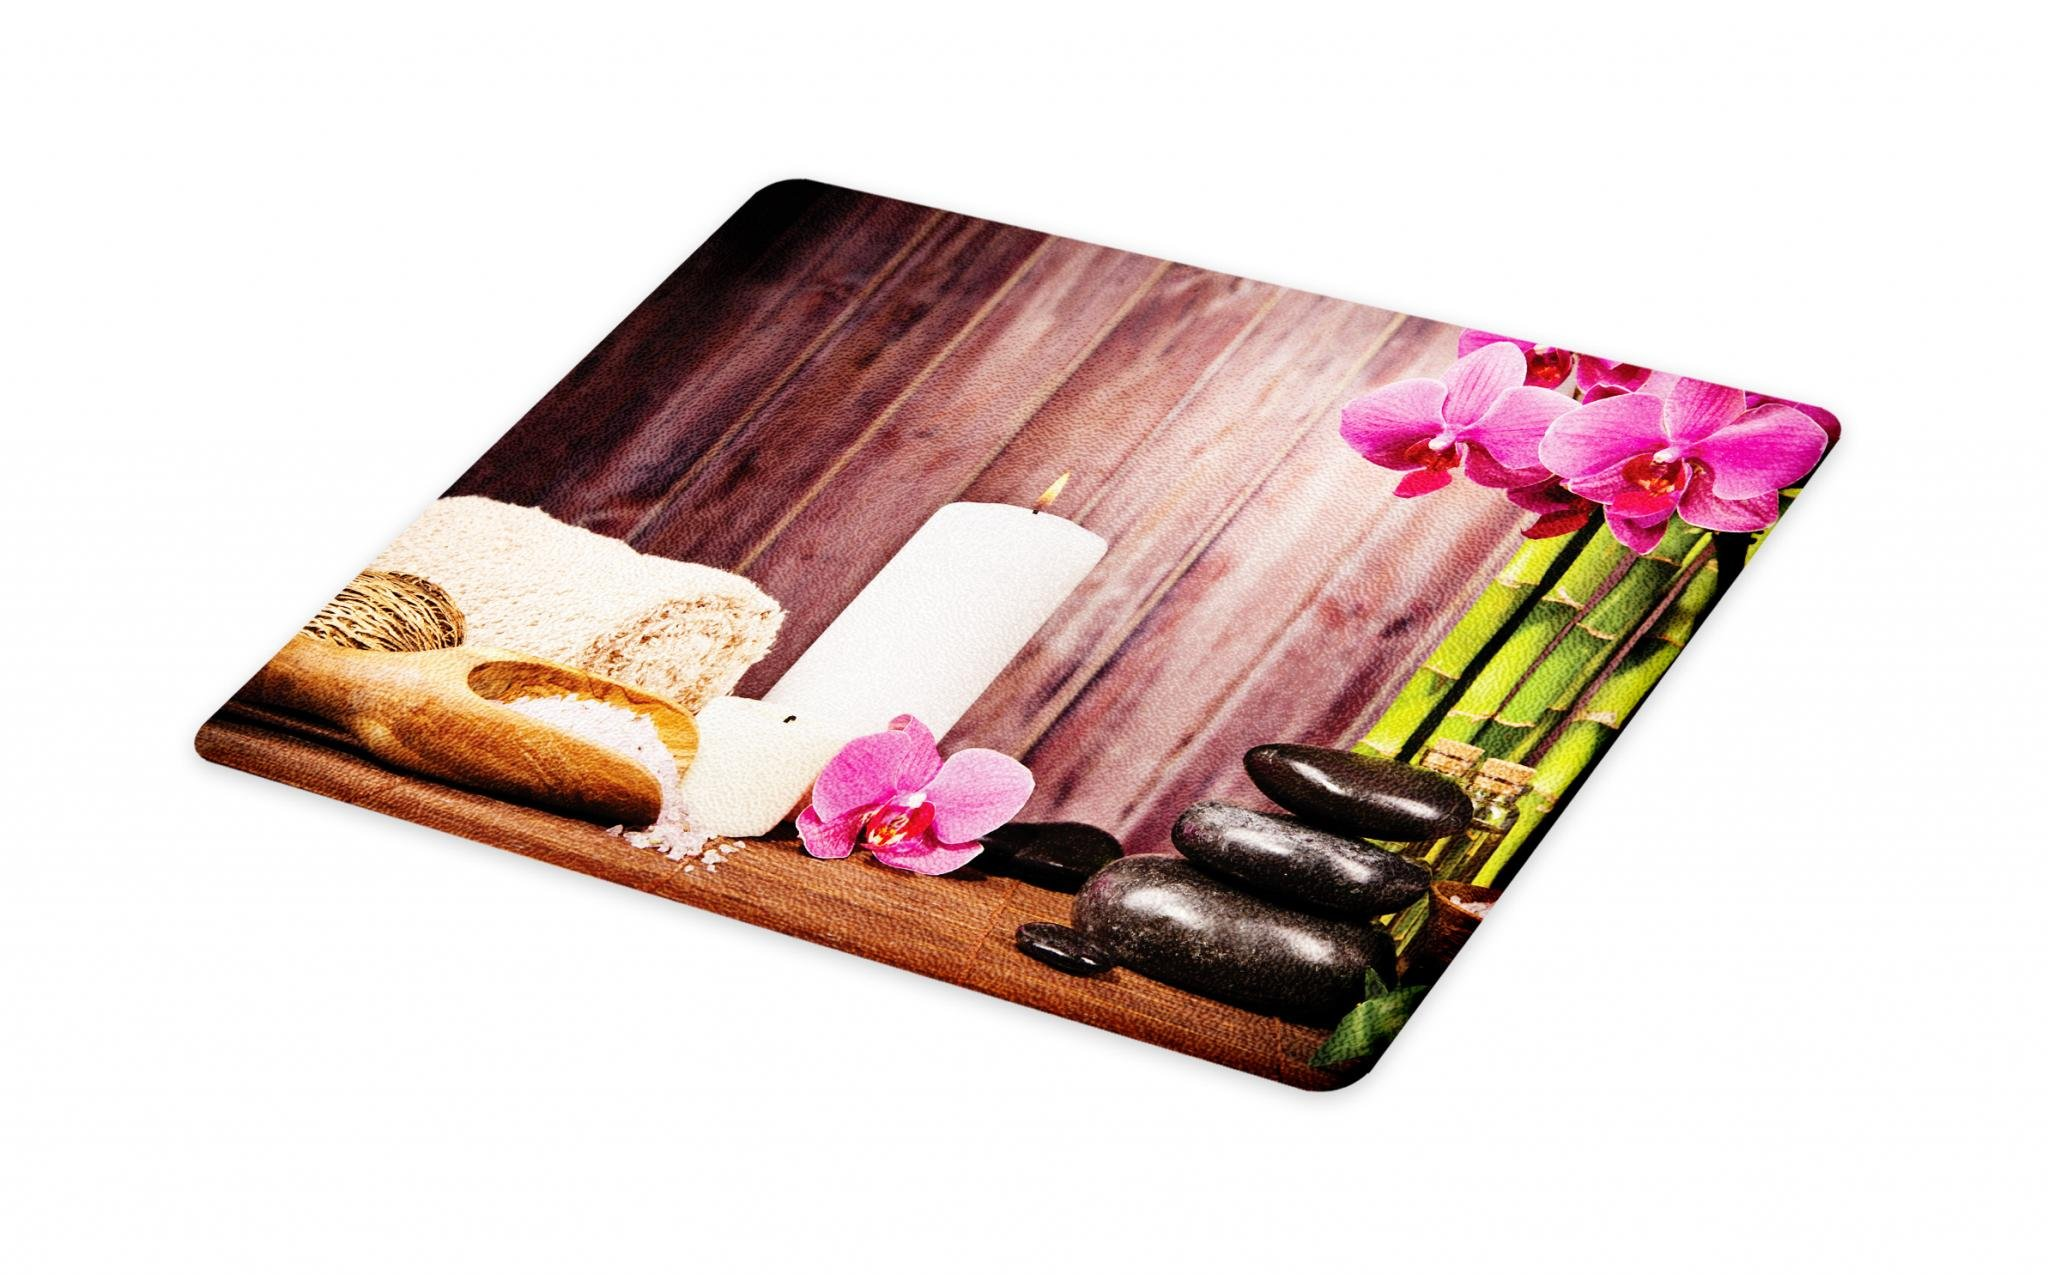 Lunarable Spa Cutting Board, Spa Candlelight Plants Wooden Wall Sea Salt Treatment Freshness Relaxing, Decorative Tempered Glass Cutting and Serving Board, Large Size, Green Pink Umber White